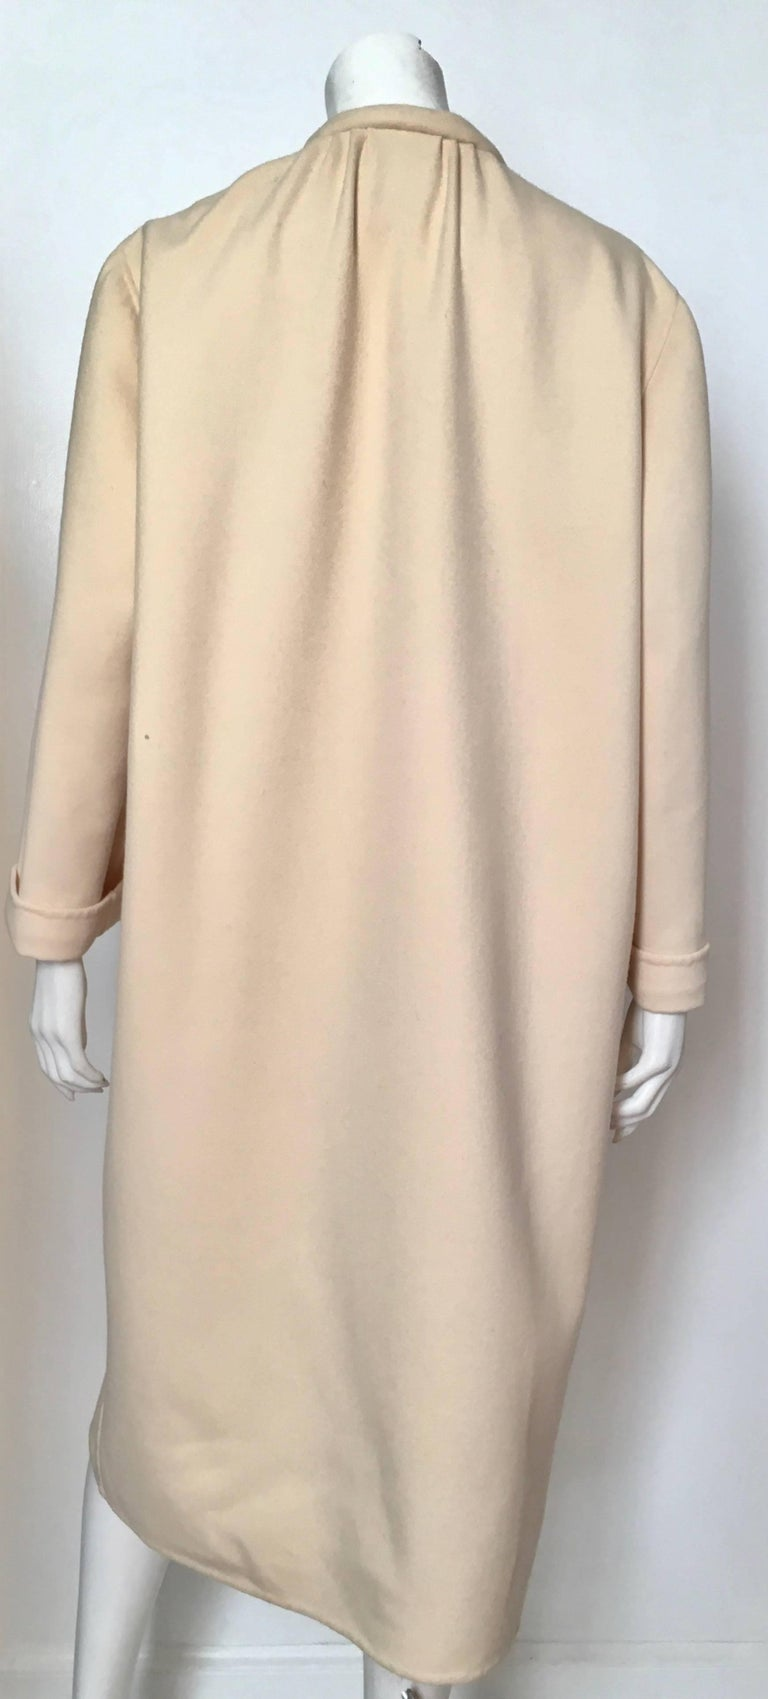 Salvatore Ferragamo Cream Wool Cocoon Coat with Pockets Size 10 In Excellent Condition For Sale In Atlanta, GA